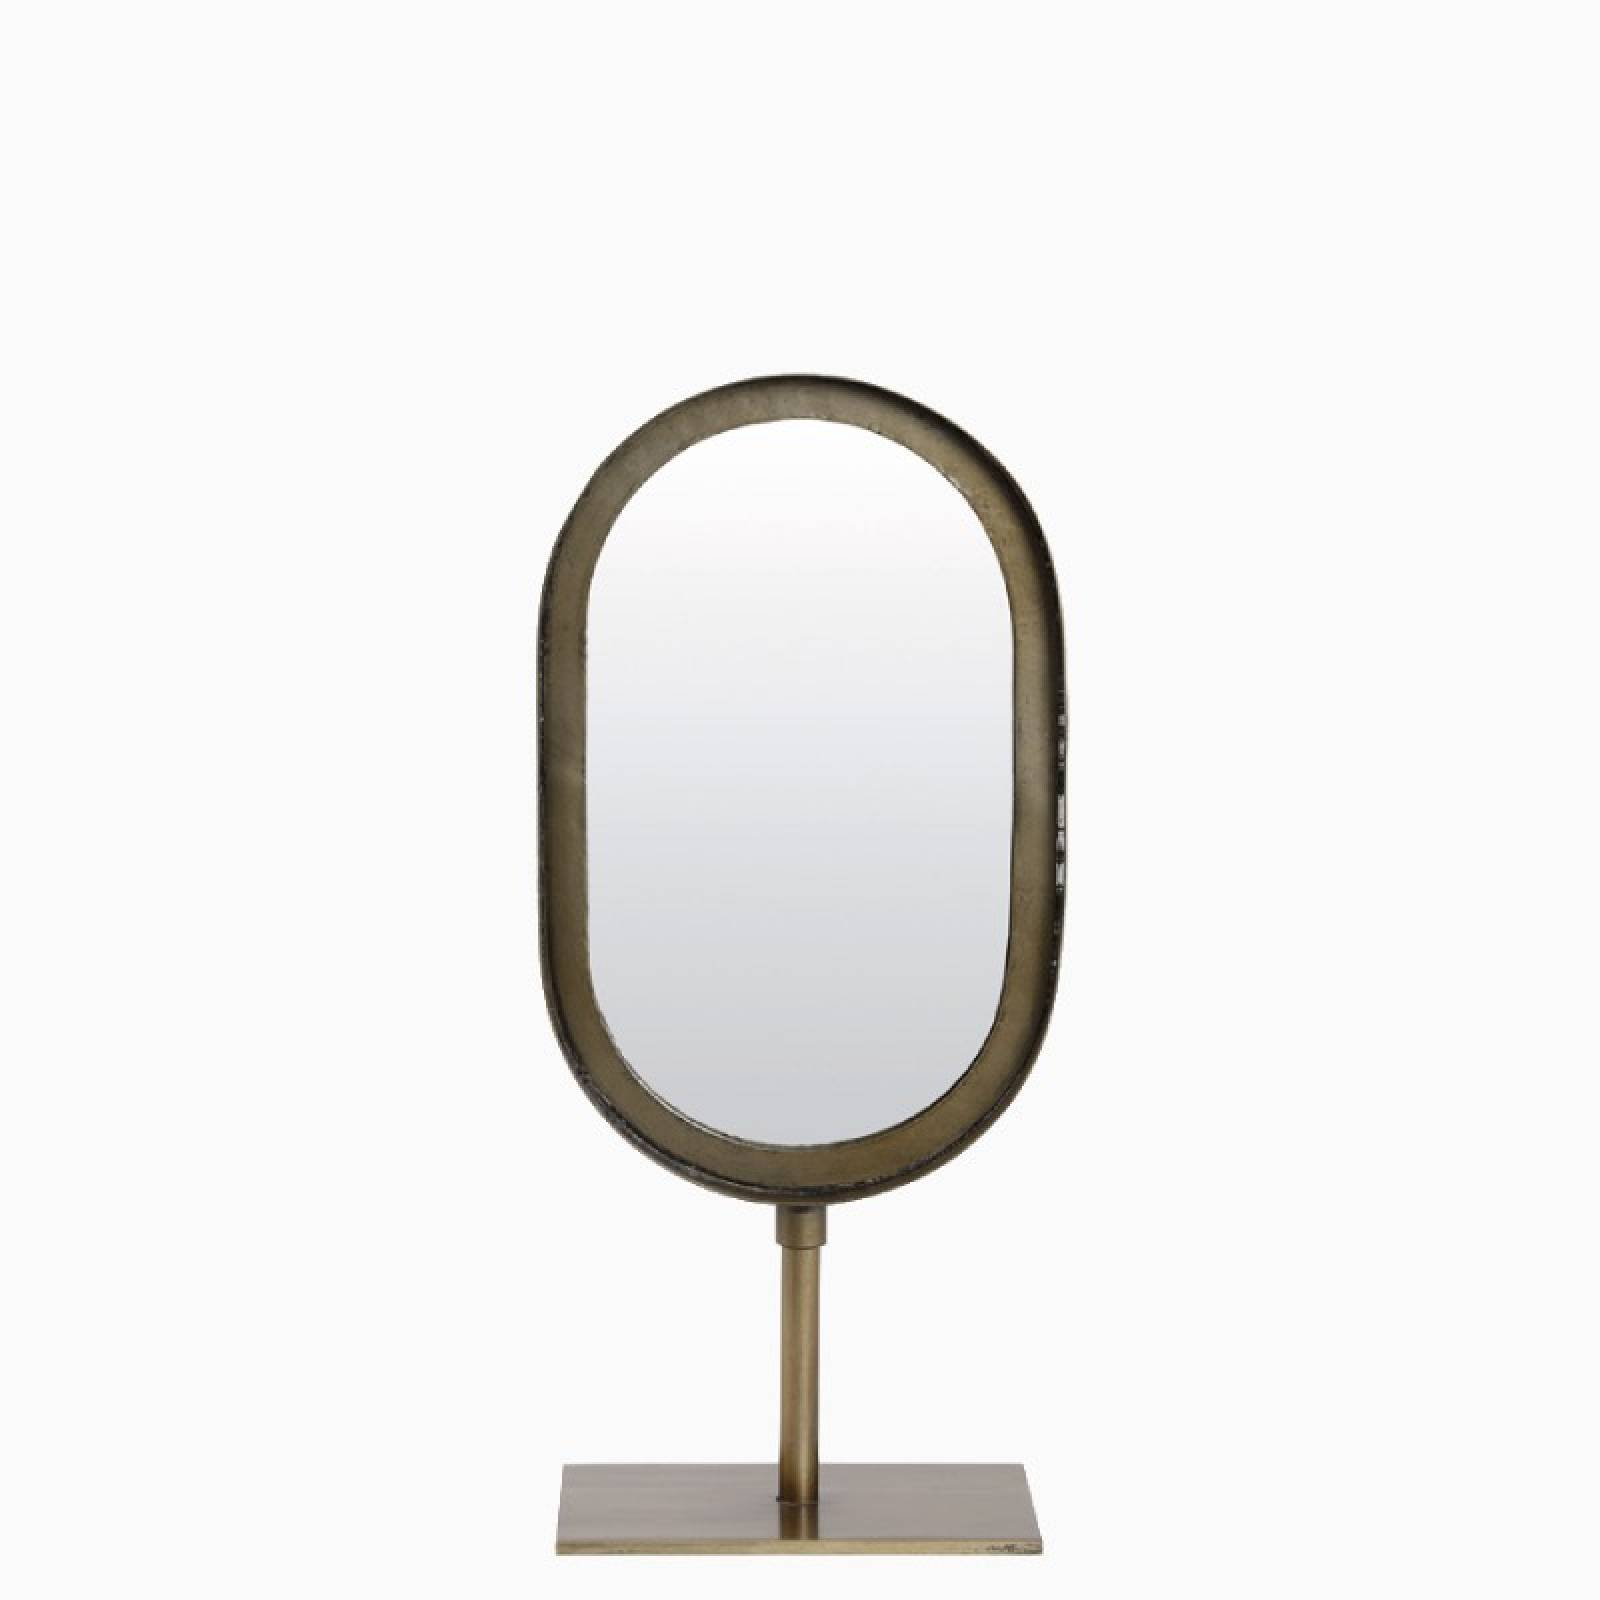 Small Oval Mirror With Metal Frame On Stand In Brass 16x35cm thumbnails